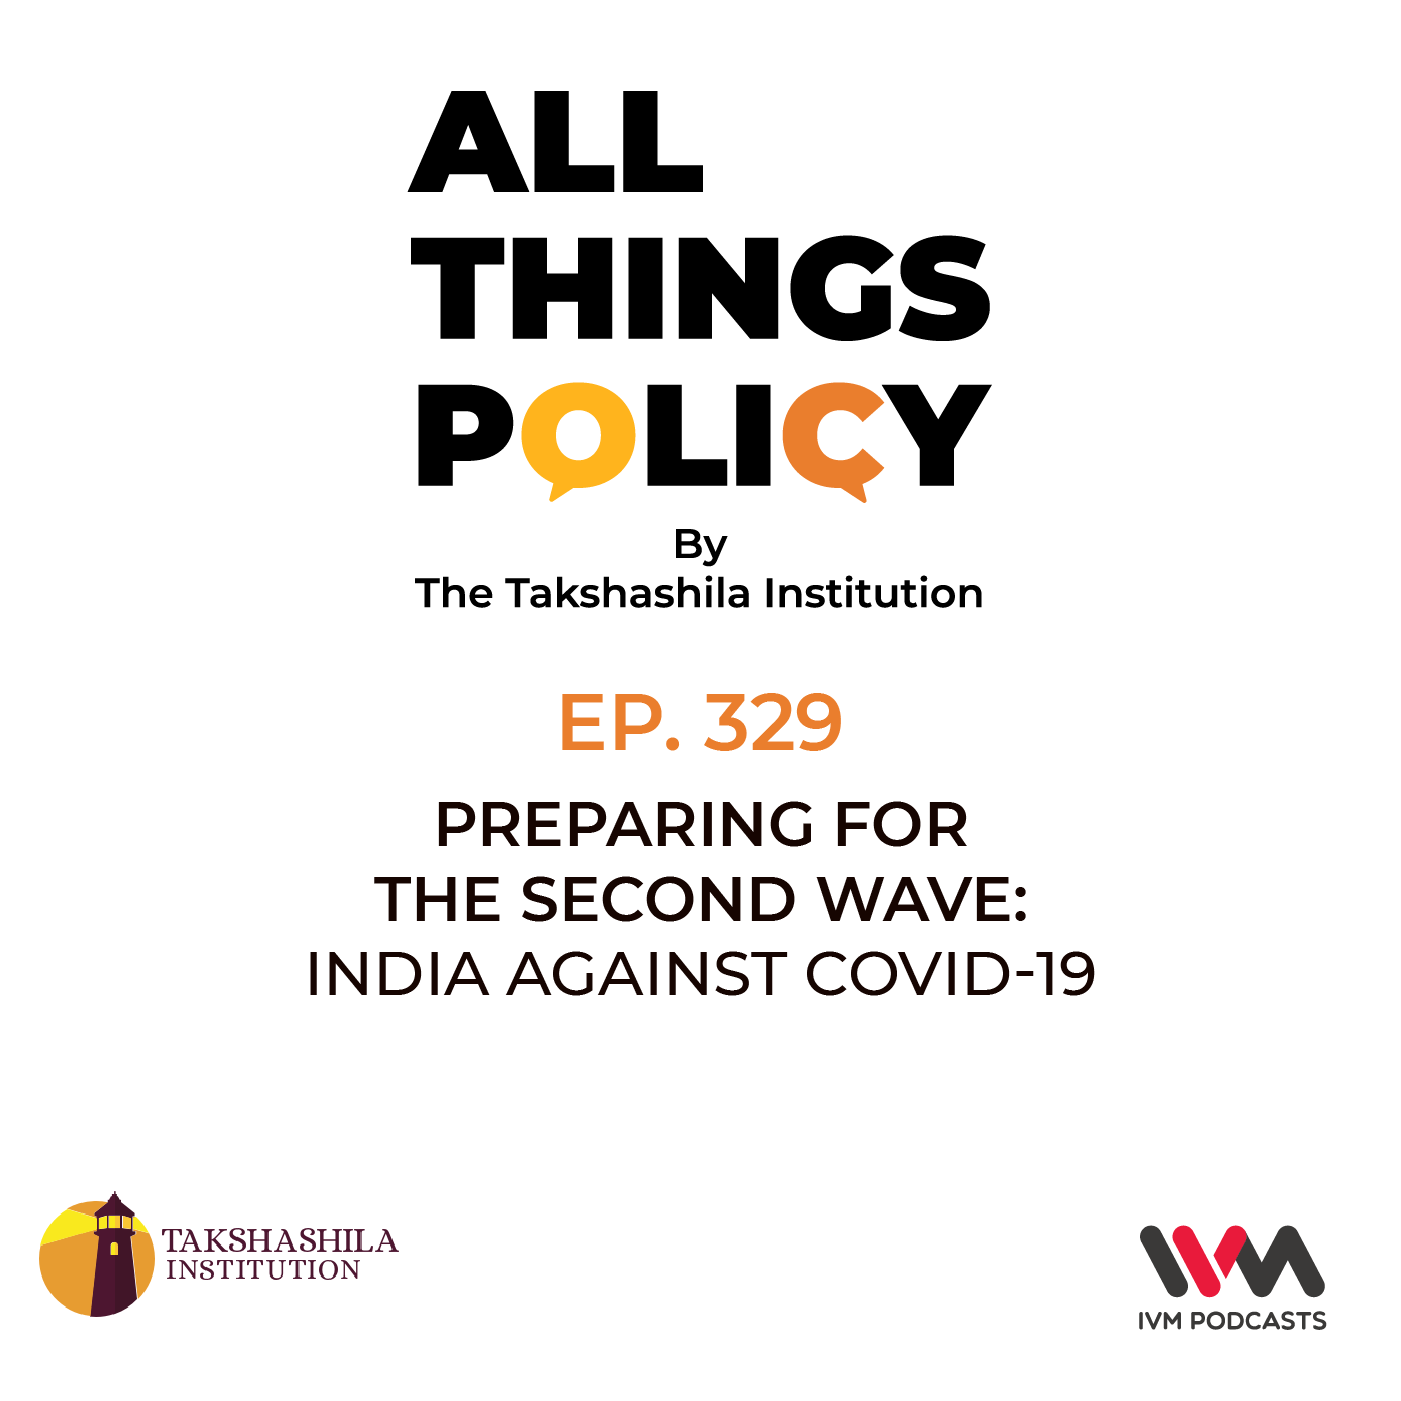 Ep. 329: Preparing for the Second Wave: India Against COVID-19